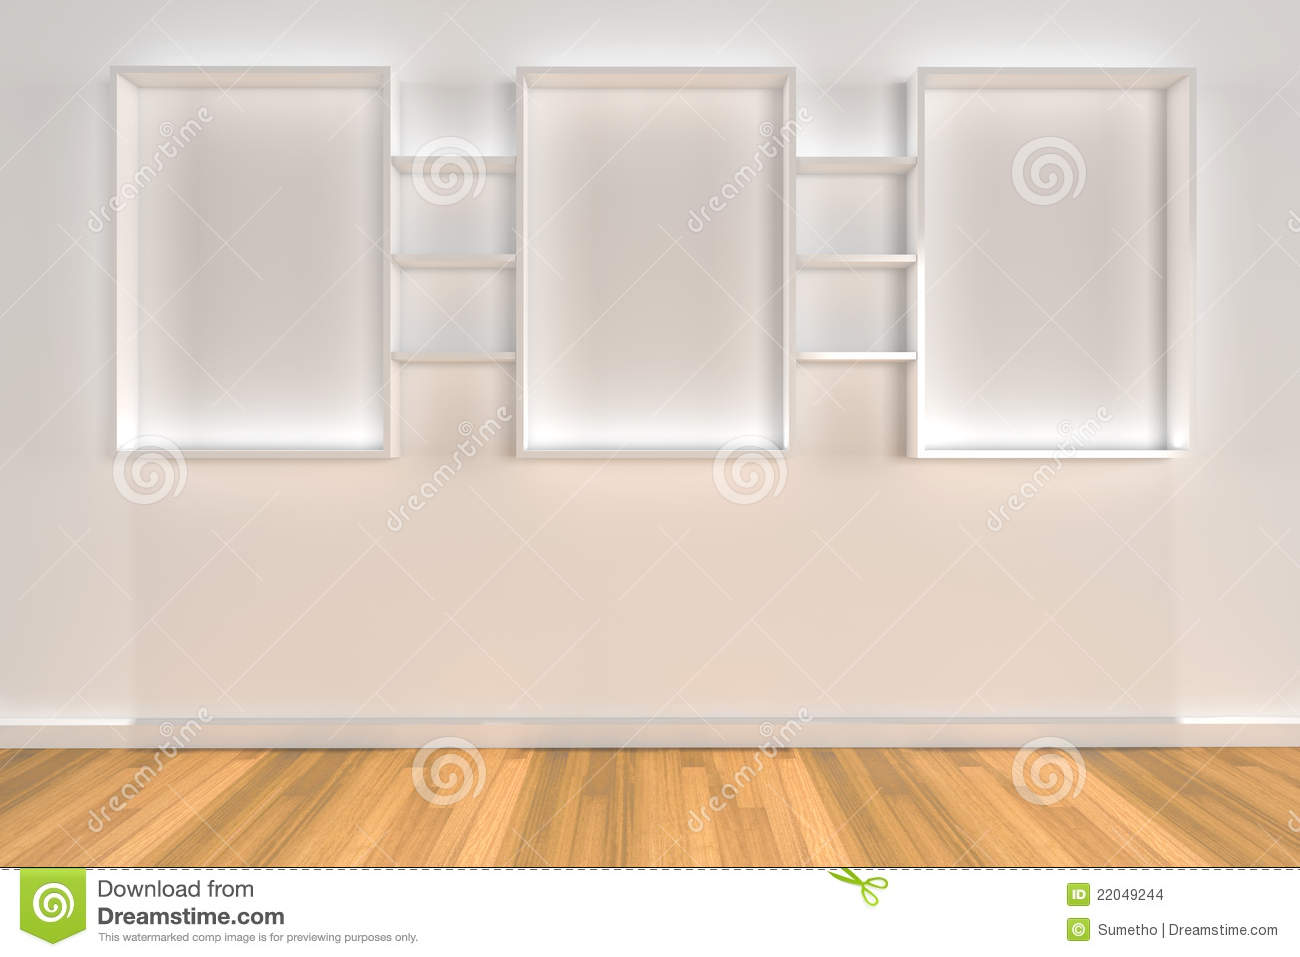 Shelves On Color Wall With Wood Floor Stock Images - Image: 22049244